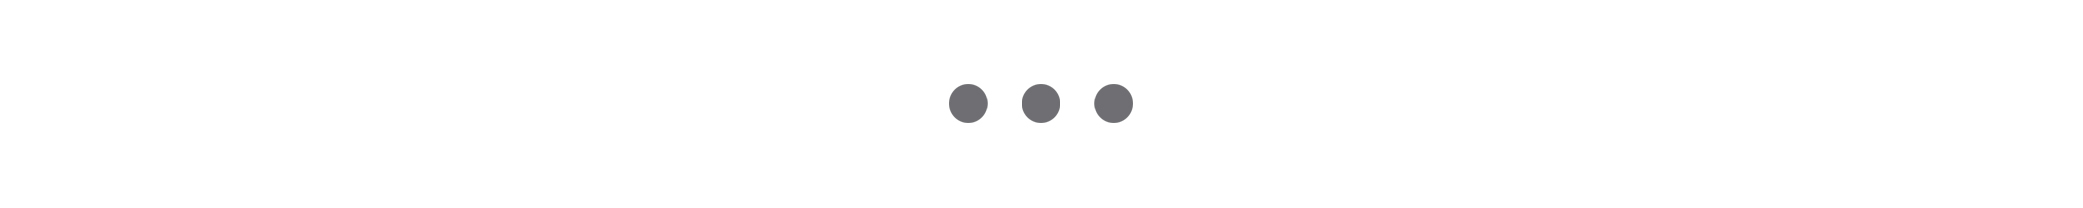 dots-divider-graphic-smallest.jpg